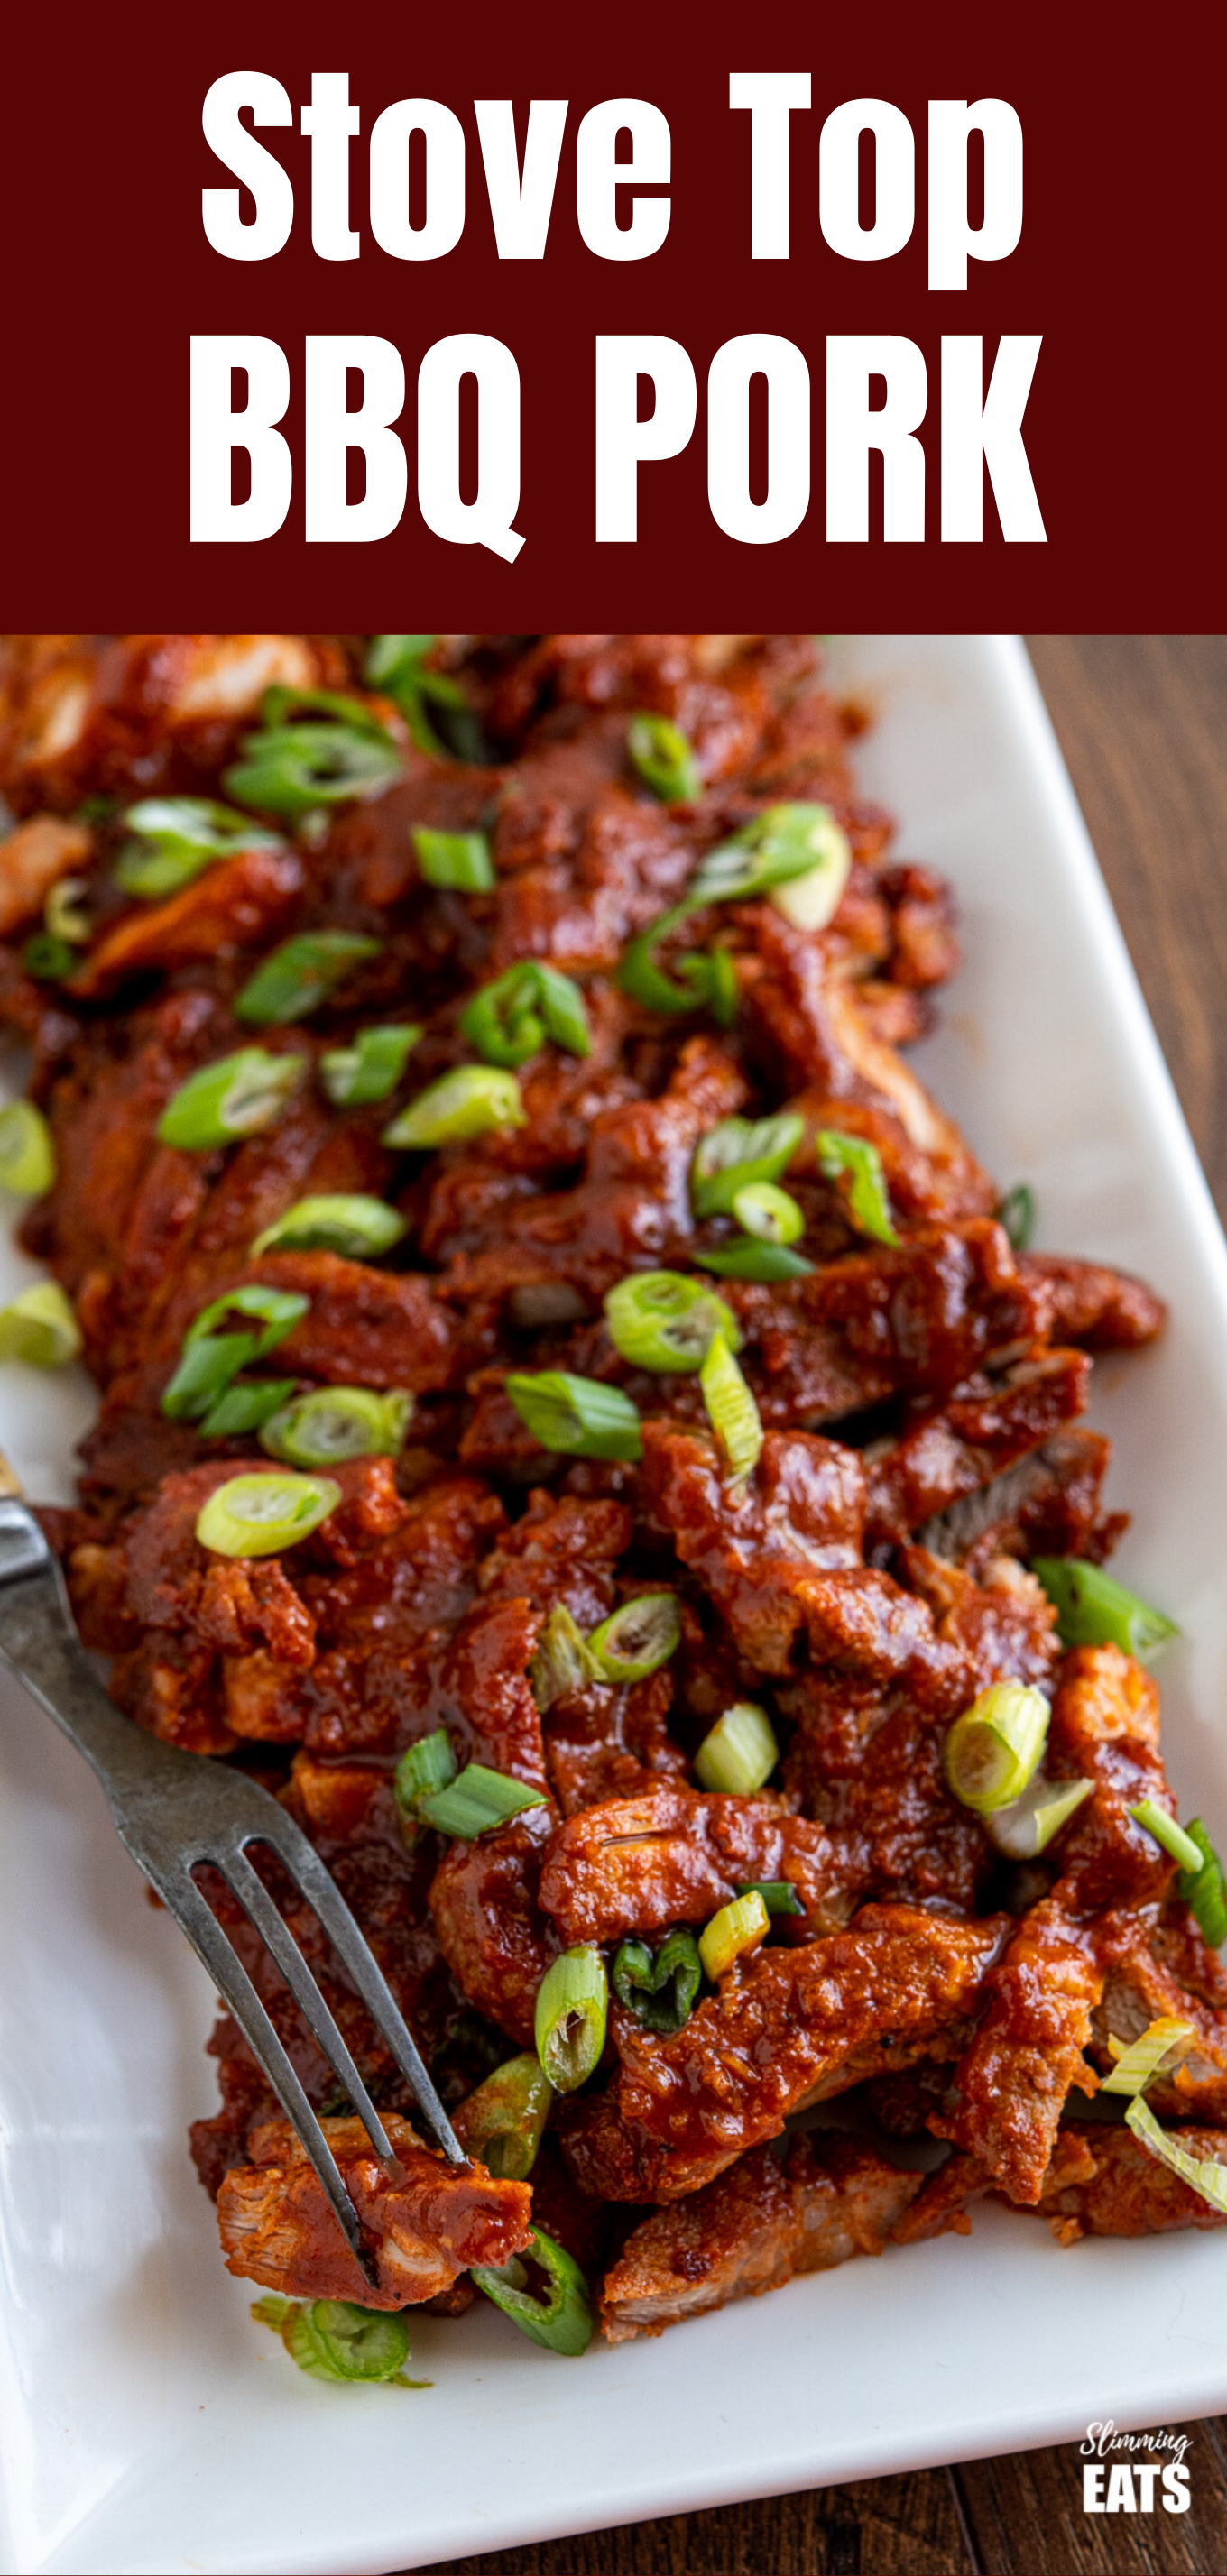 stove top bbq pork featured pin image